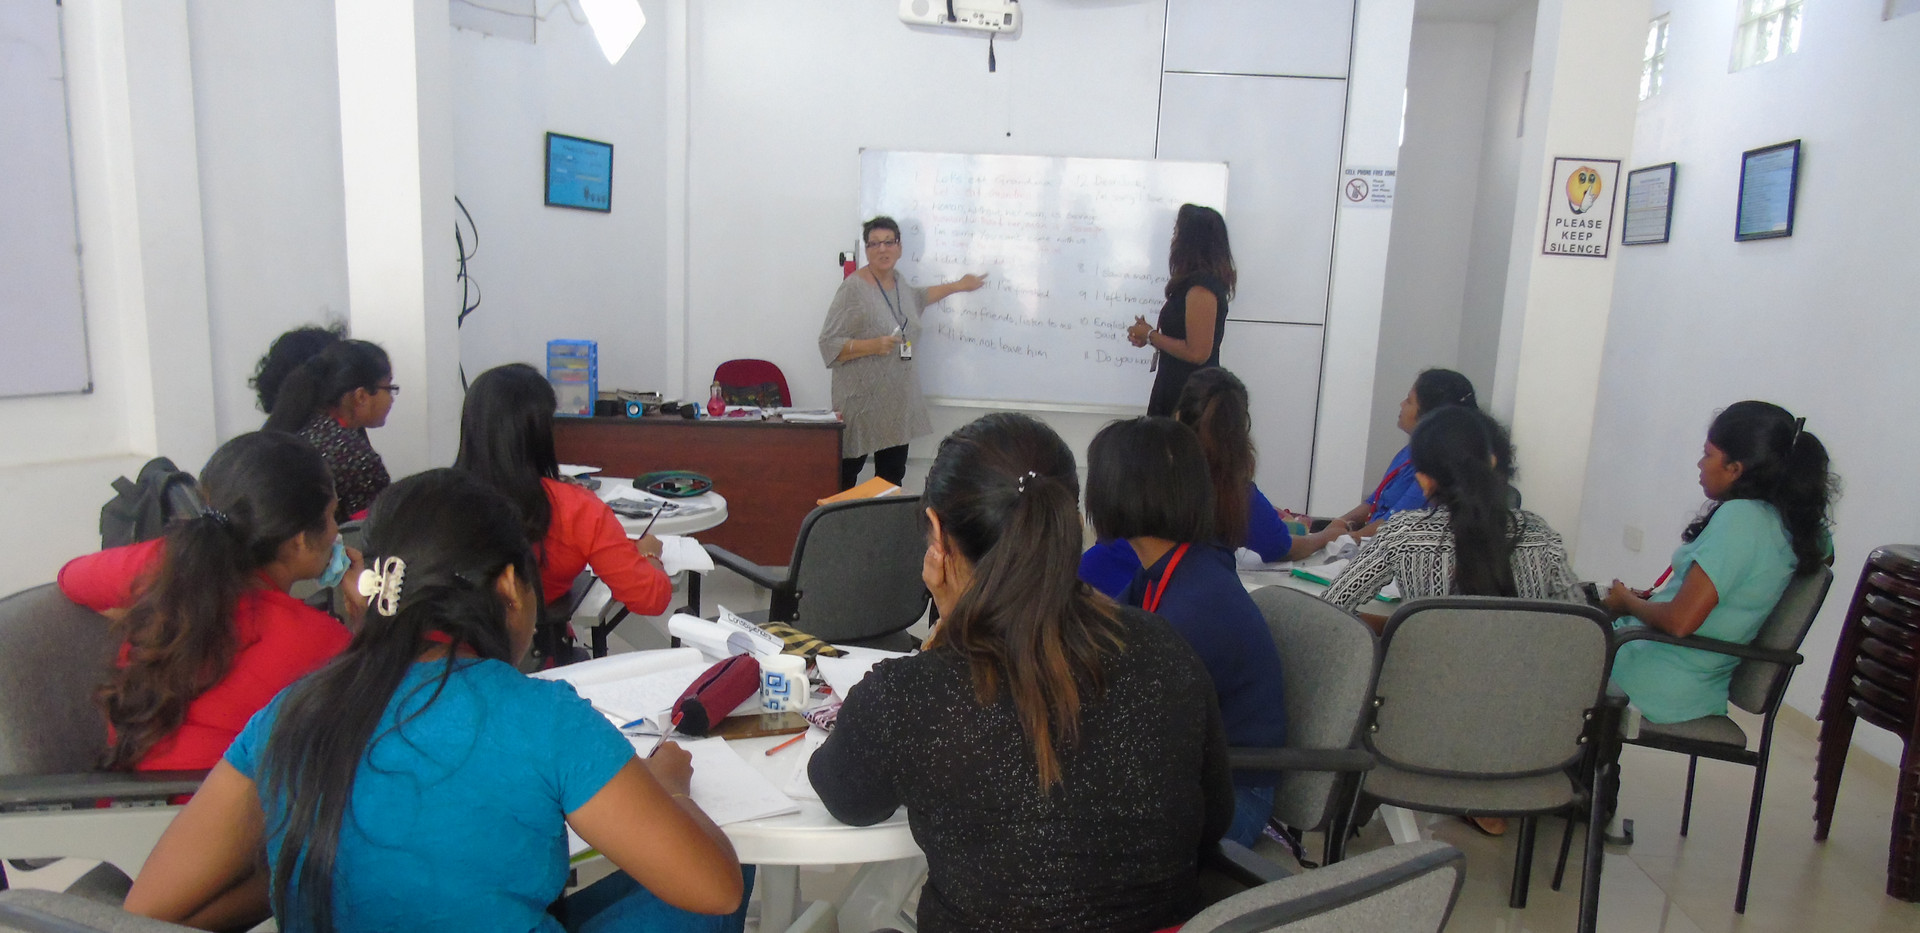 Lecture session